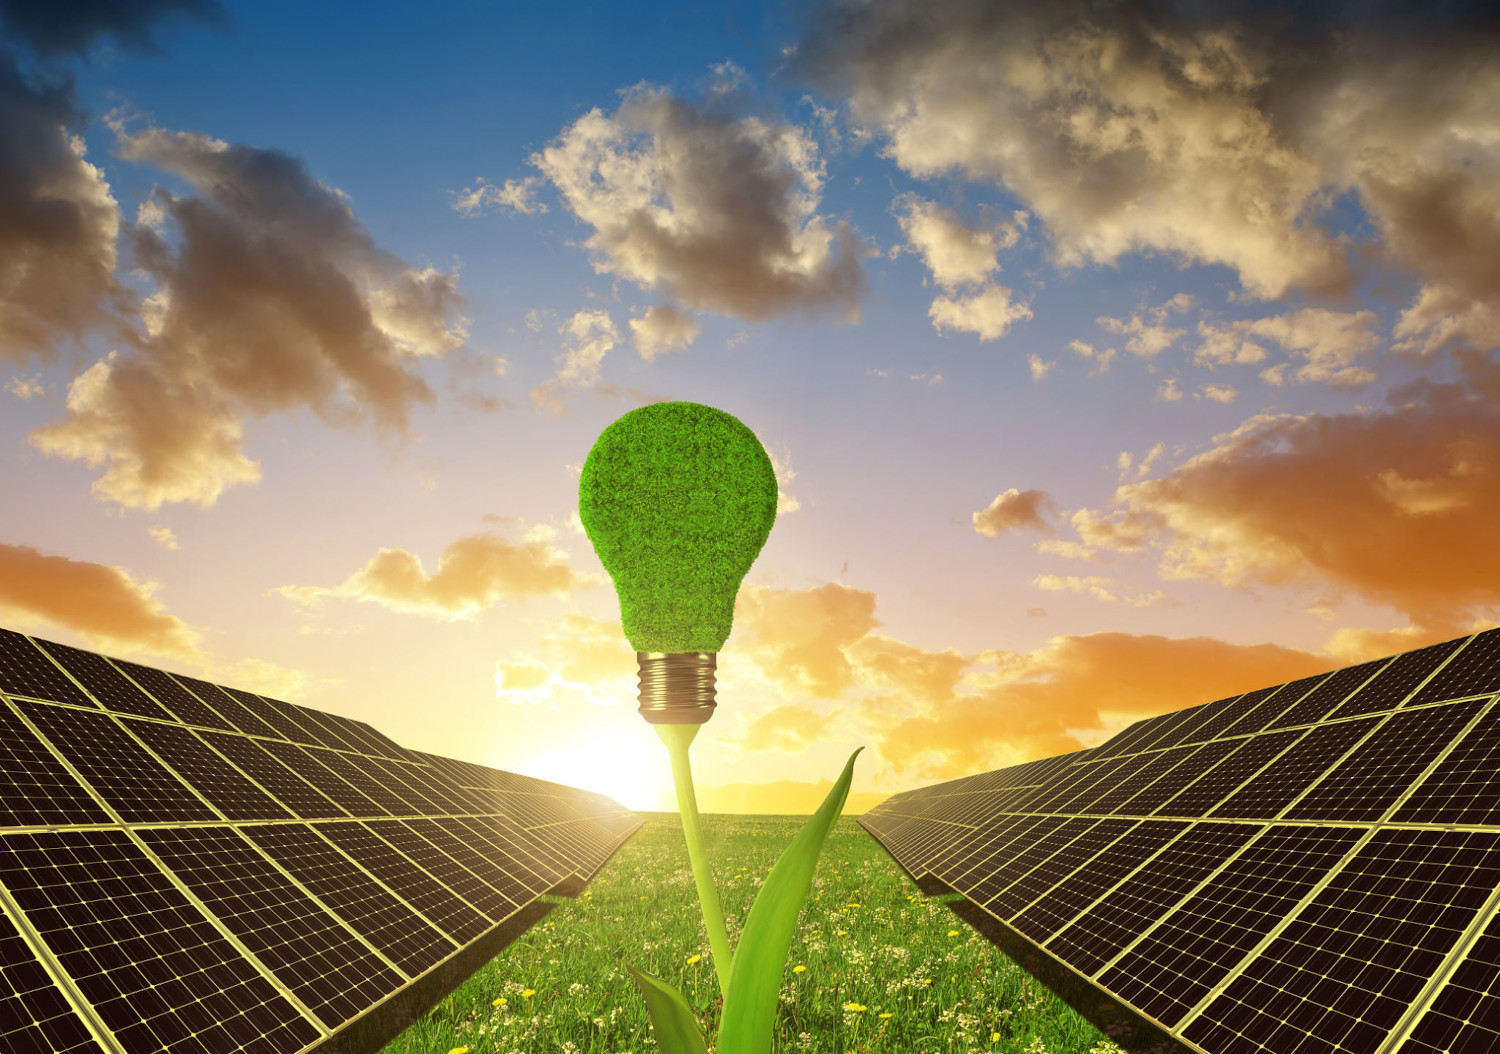 an image of a field of solar panels supplying power to a light bulb via a plant stem